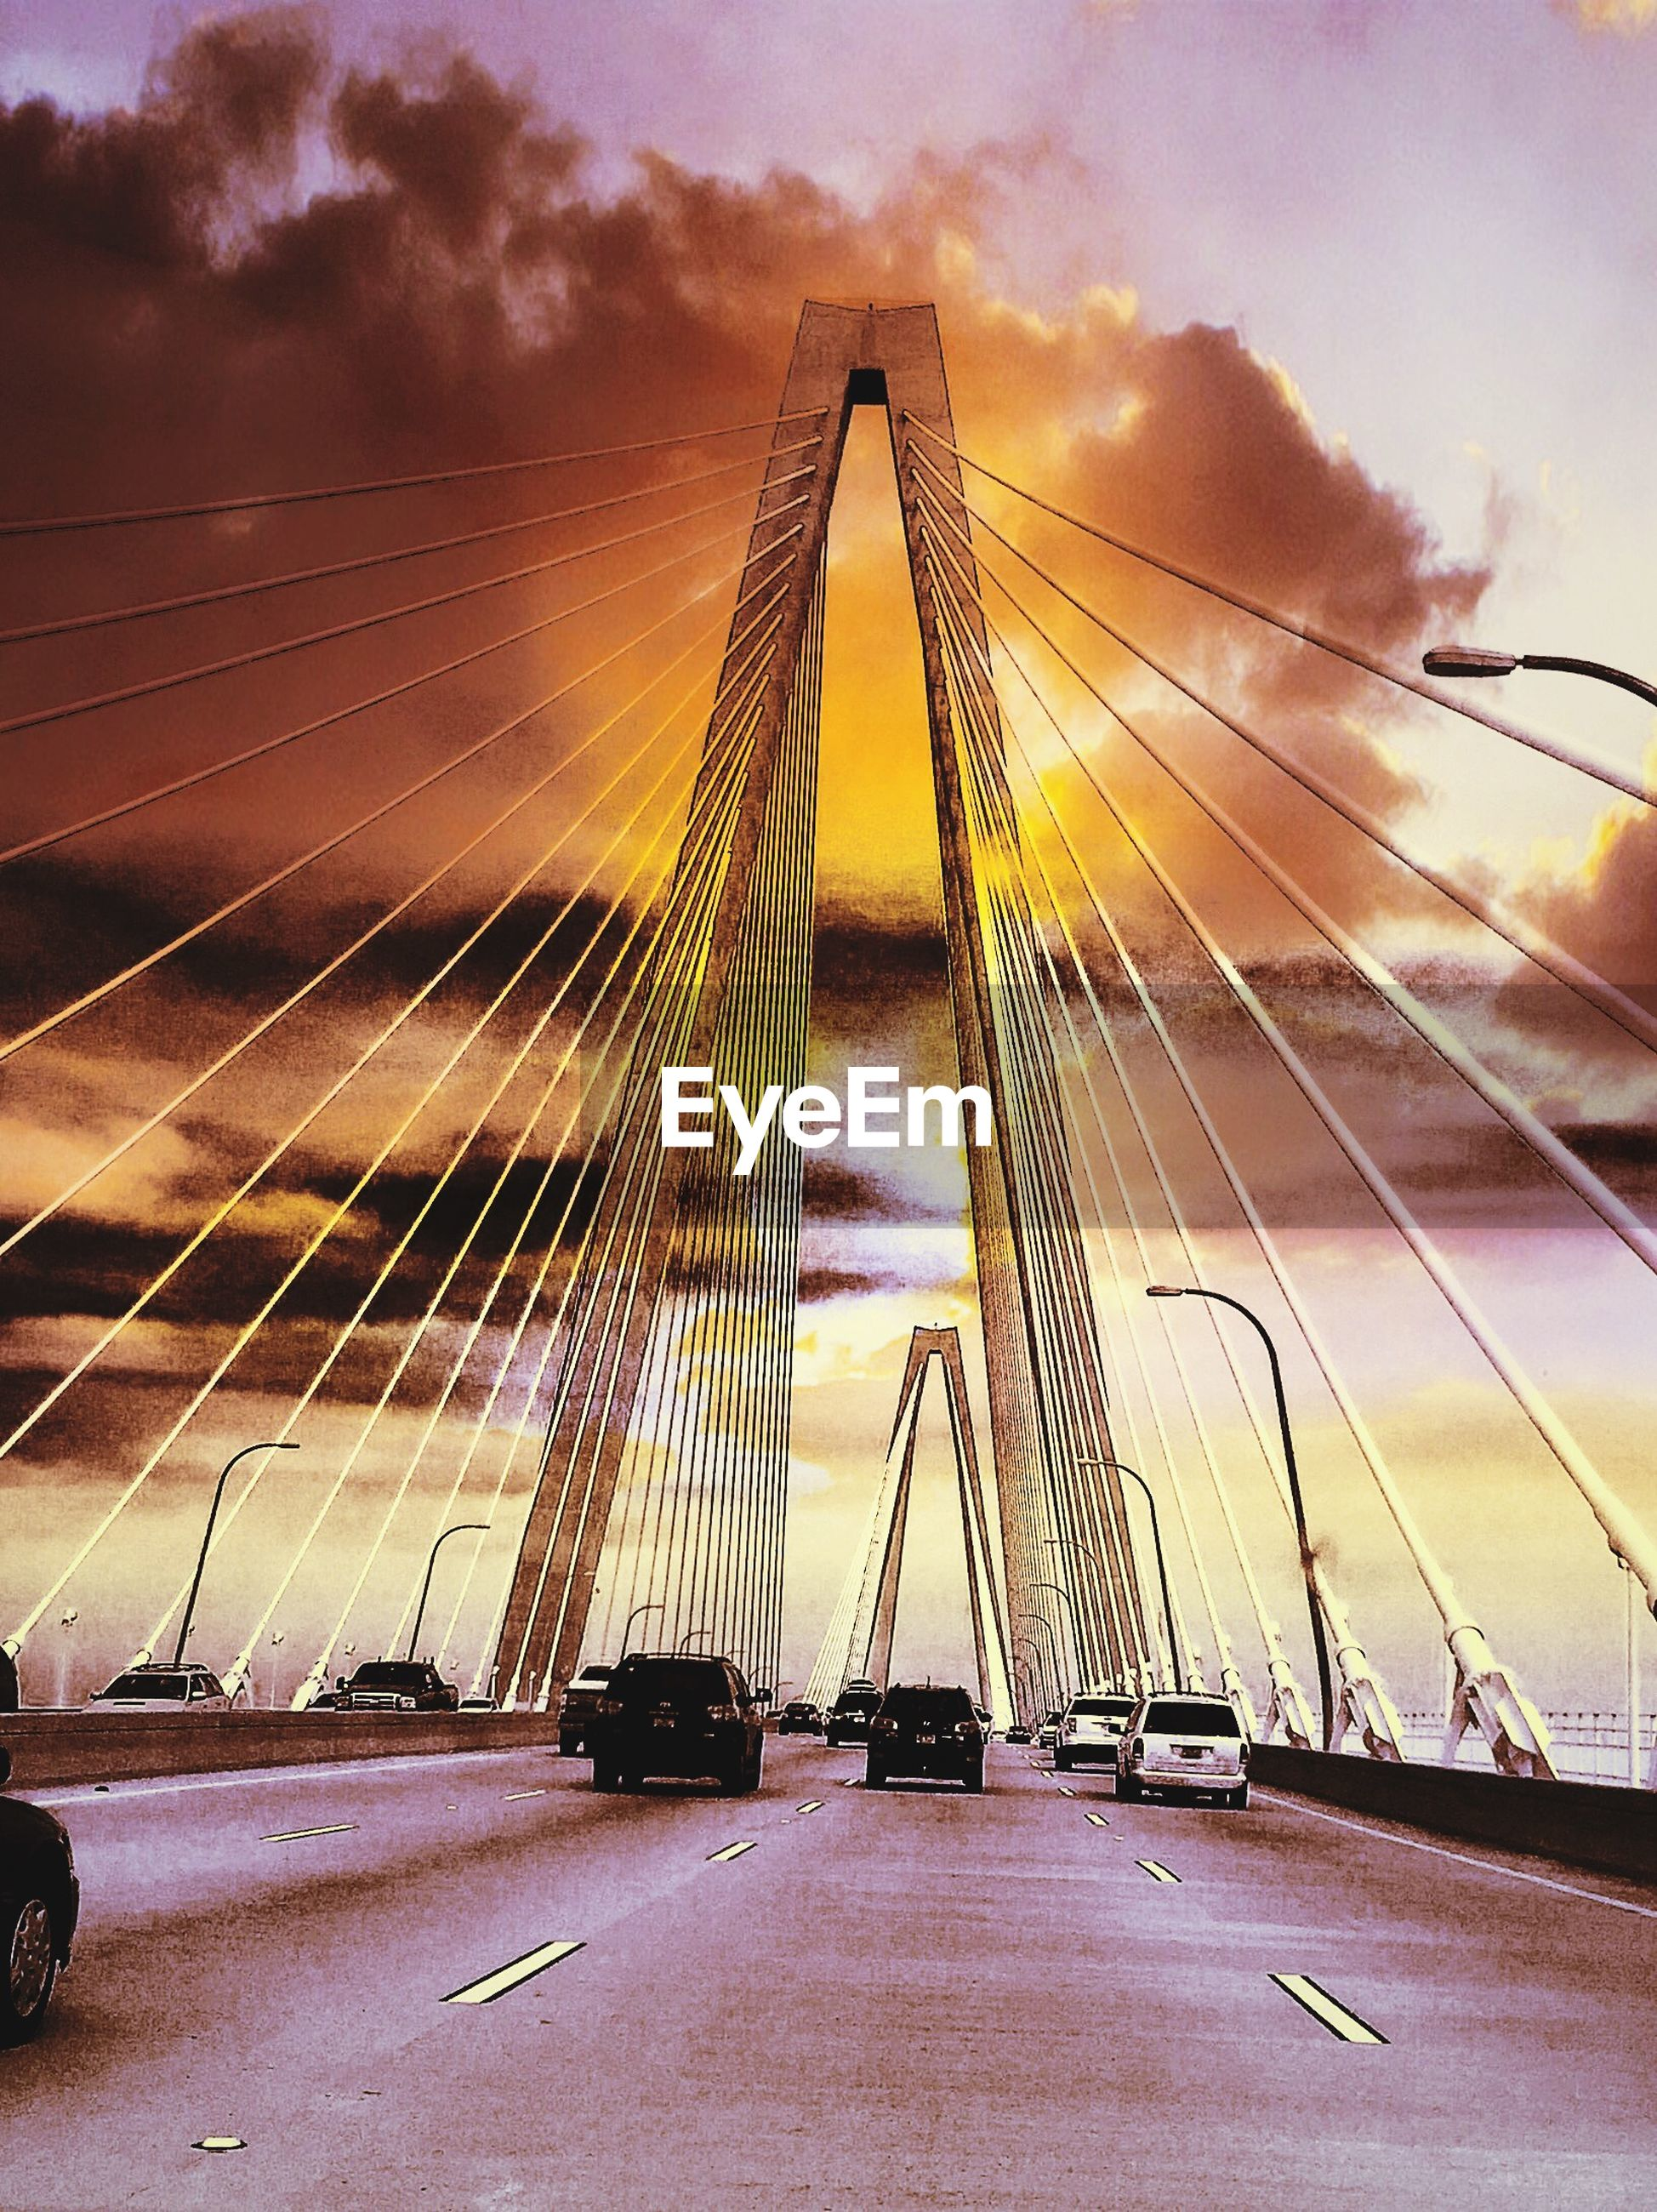 sky, transportation, cloud - sky, the way forward, sunset, connection, engineering, cloudy, bridge - man made structure, suspension bridge, built structure, cloud, diminishing perspective, architecture, low angle view, outdoors, dusk, vanishing point, road, cable-stayed bridge